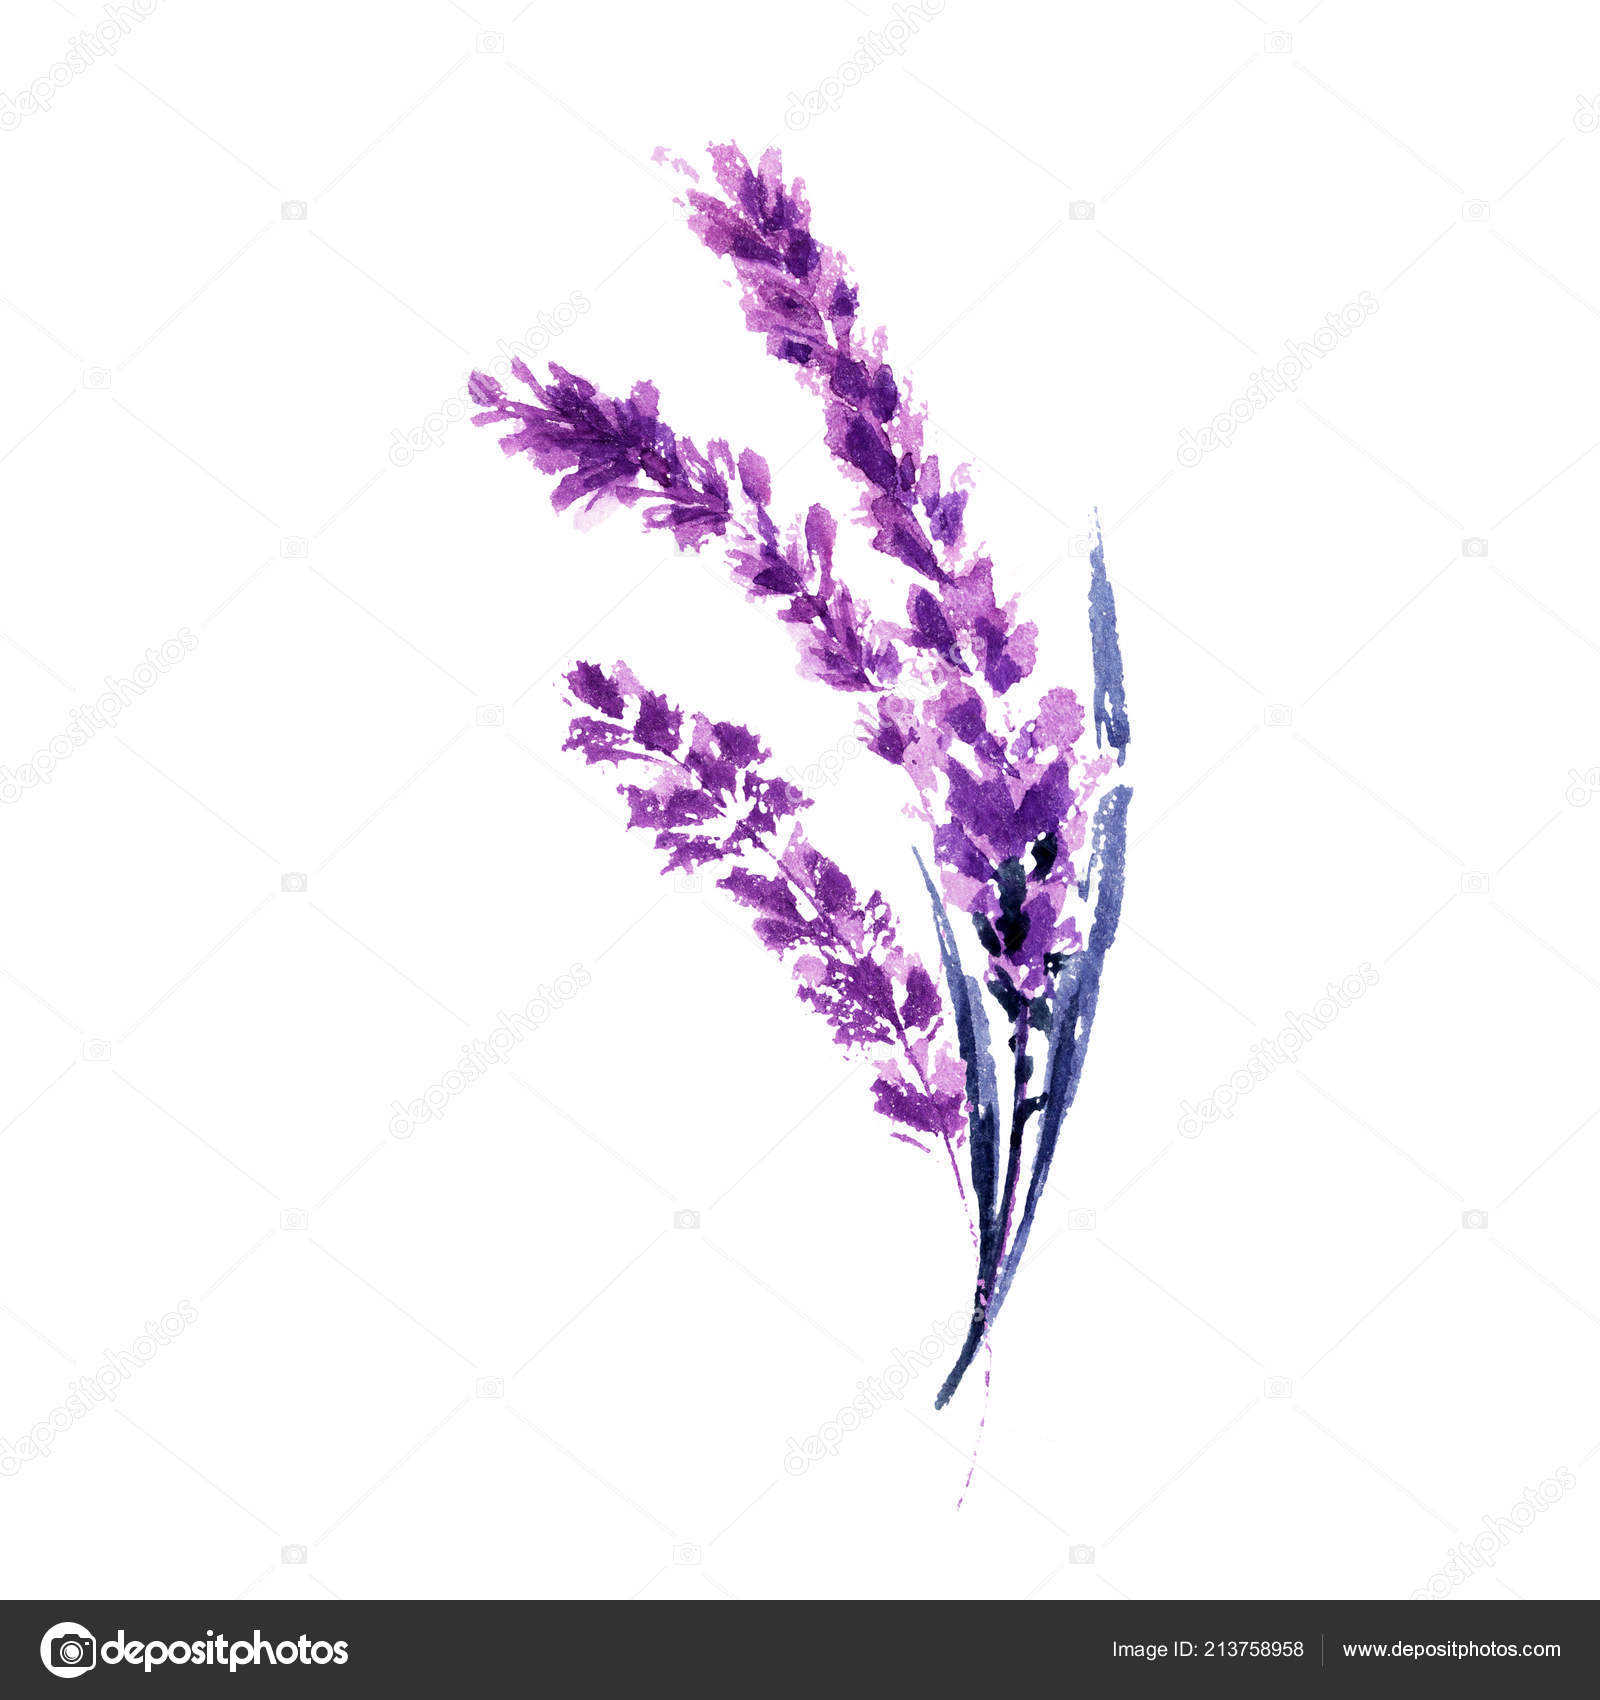 Lavender Flowers Watercolor Illustration Straight Lavender Branches Wedding Valentine Day Stock Photo Image By C Ilonitta 213758958